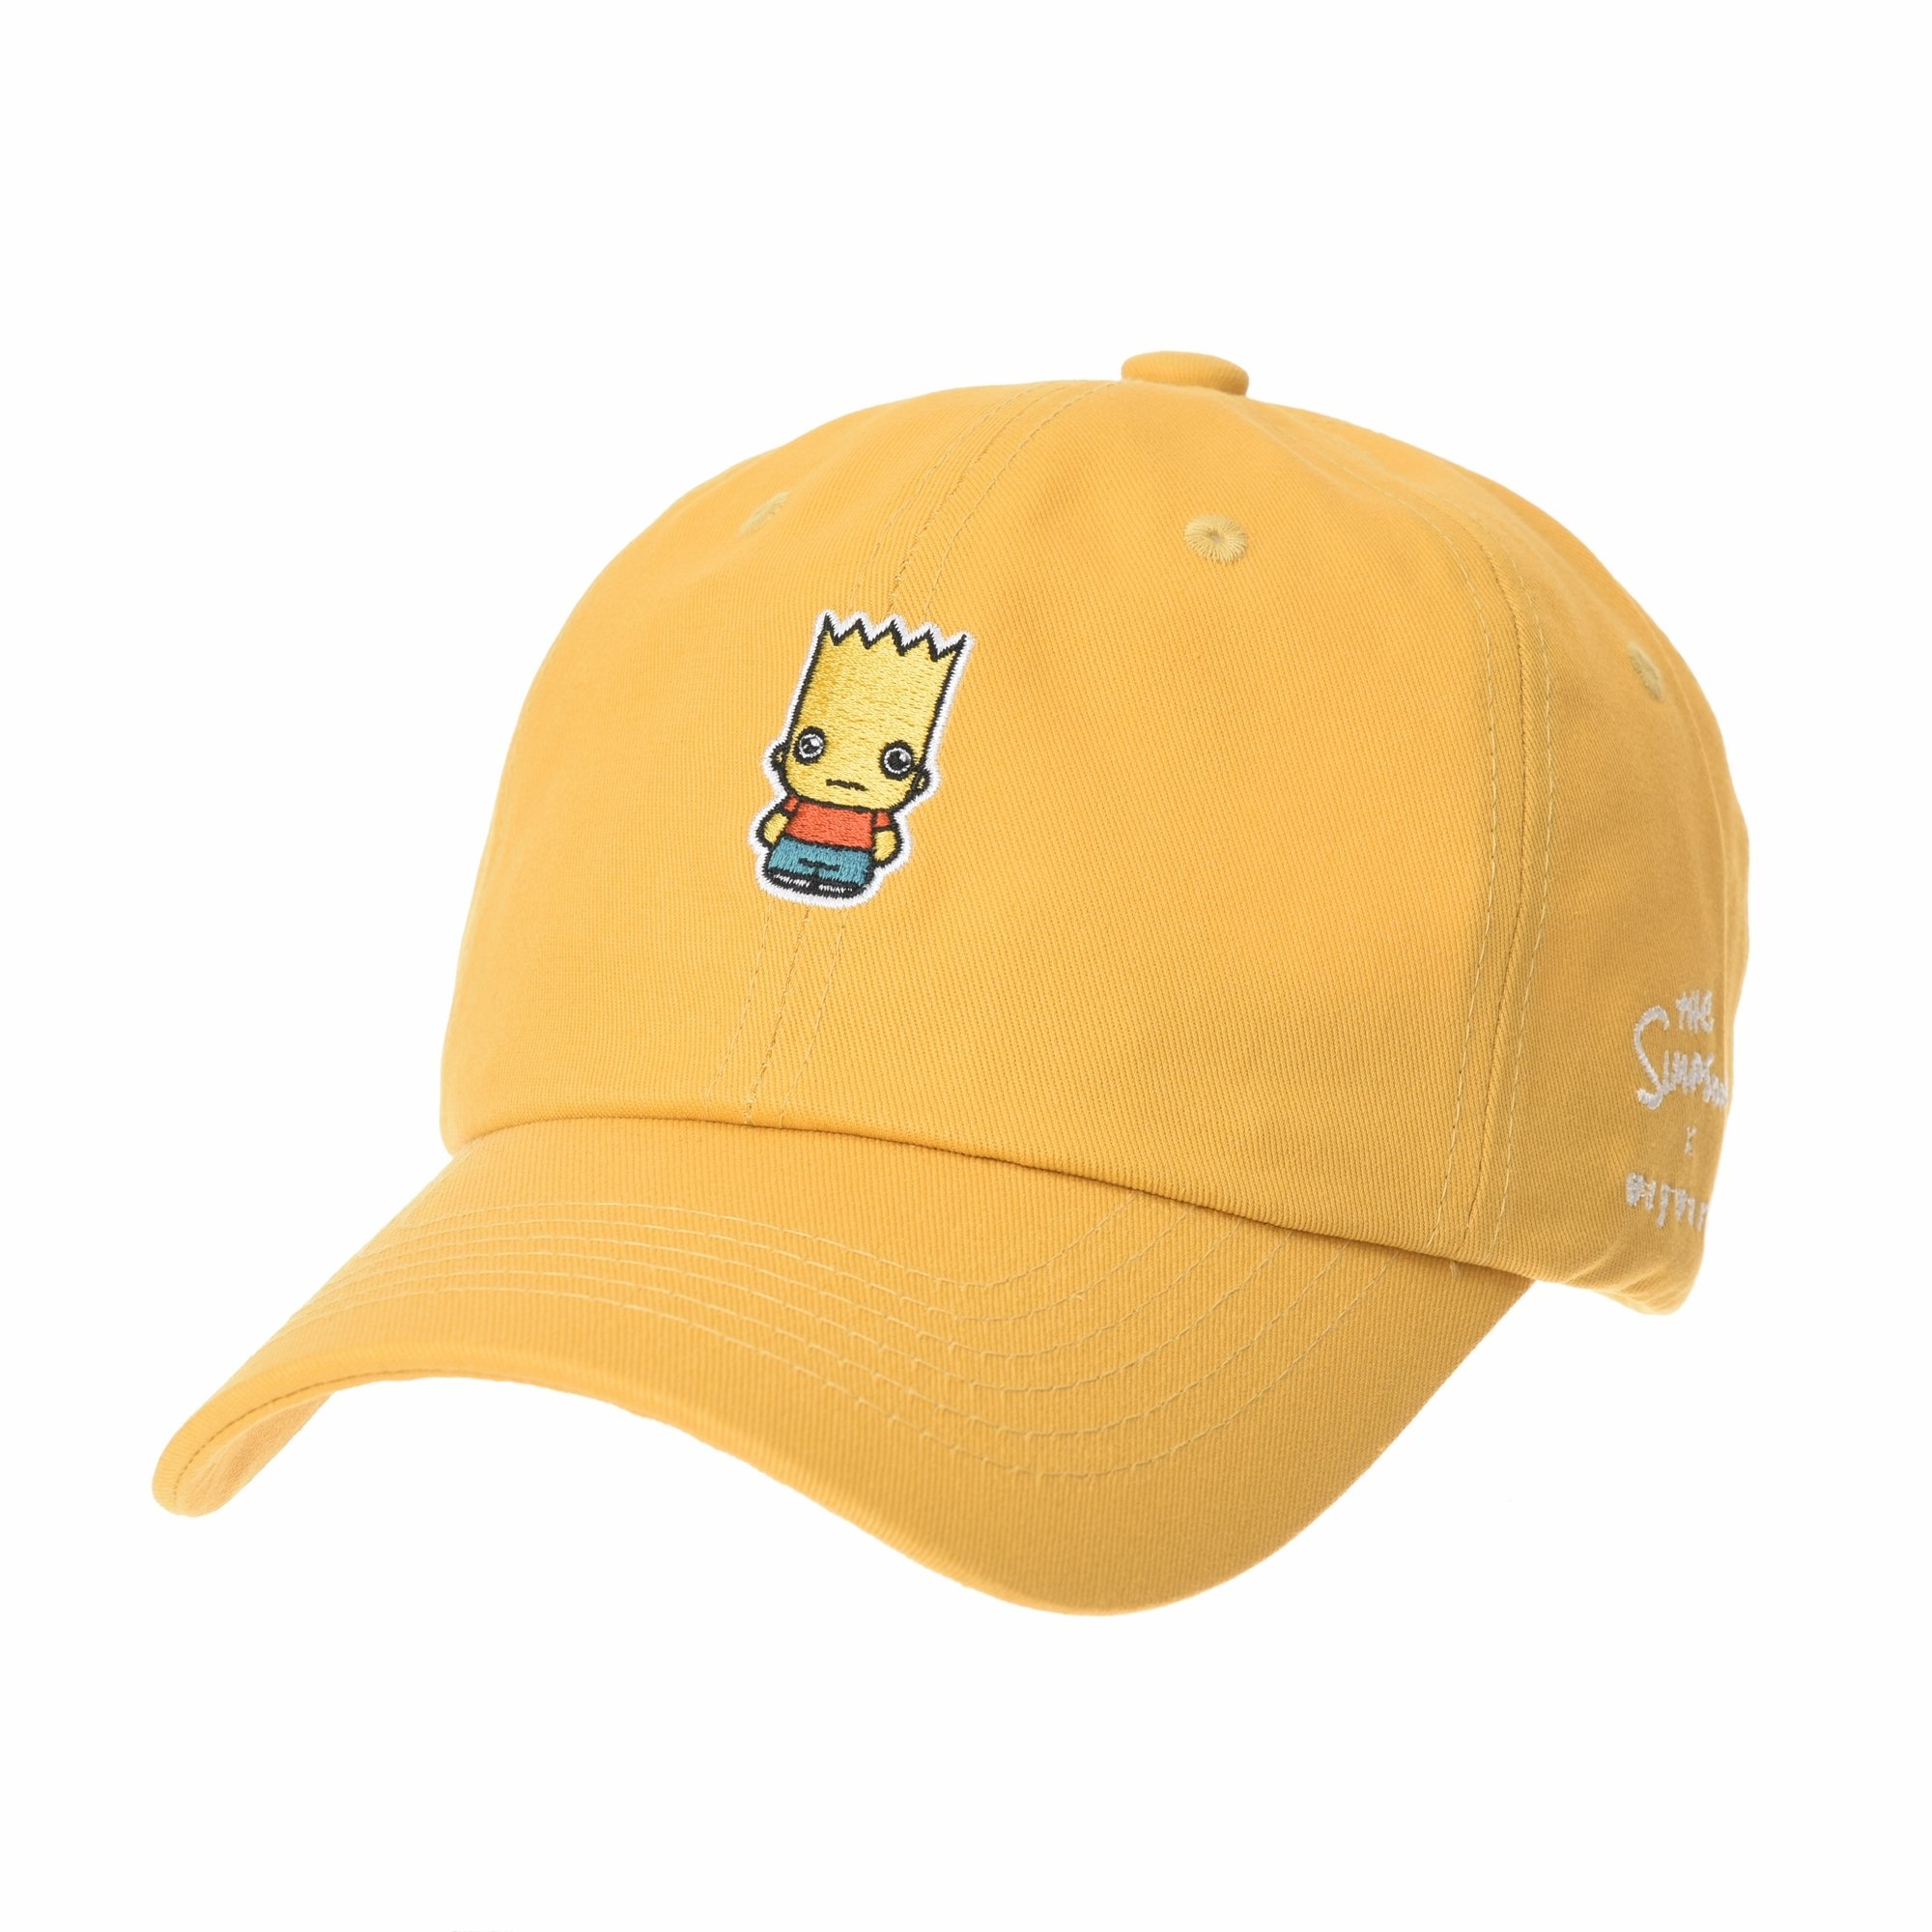 b9bed227eb3ca WITHMOONS The Simpsons Baseball Cap Groot Bart Embroidery Hat HL11028  (Yellow)